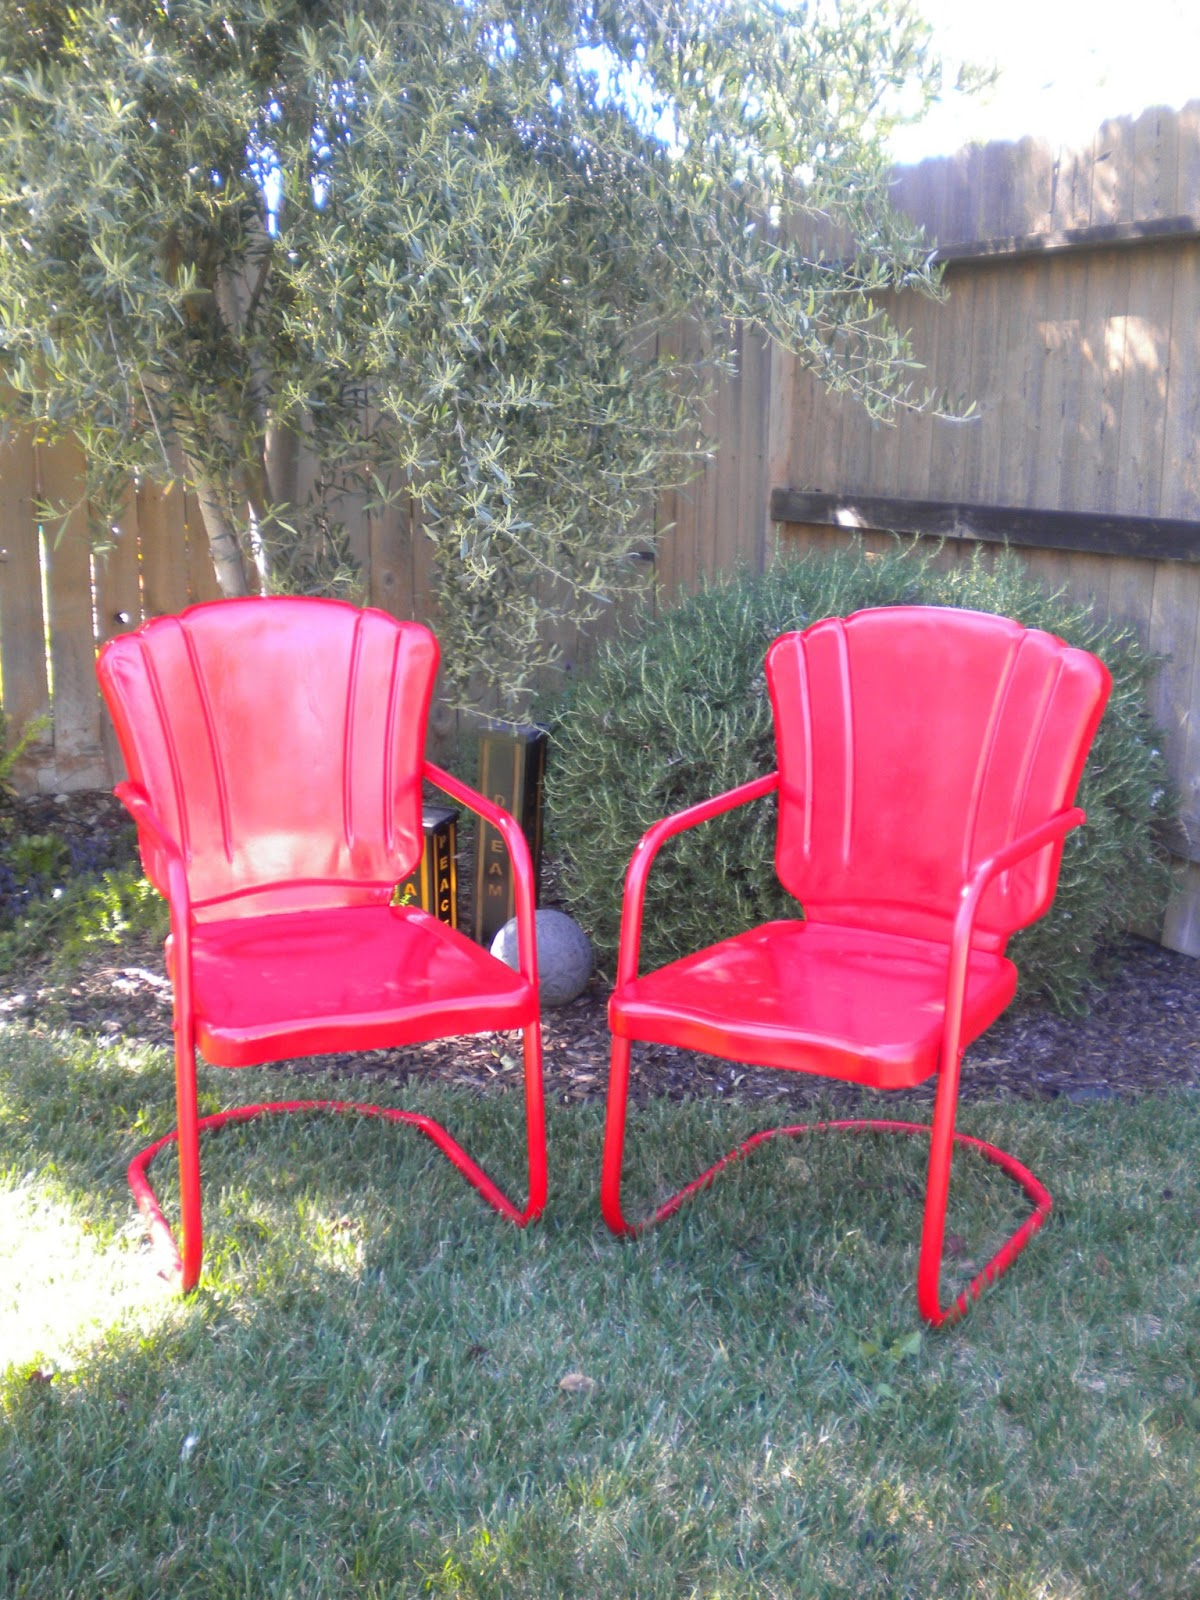 Retro Lawn Chairs Shabby Brocante Vintage Metal Lawn Chairs